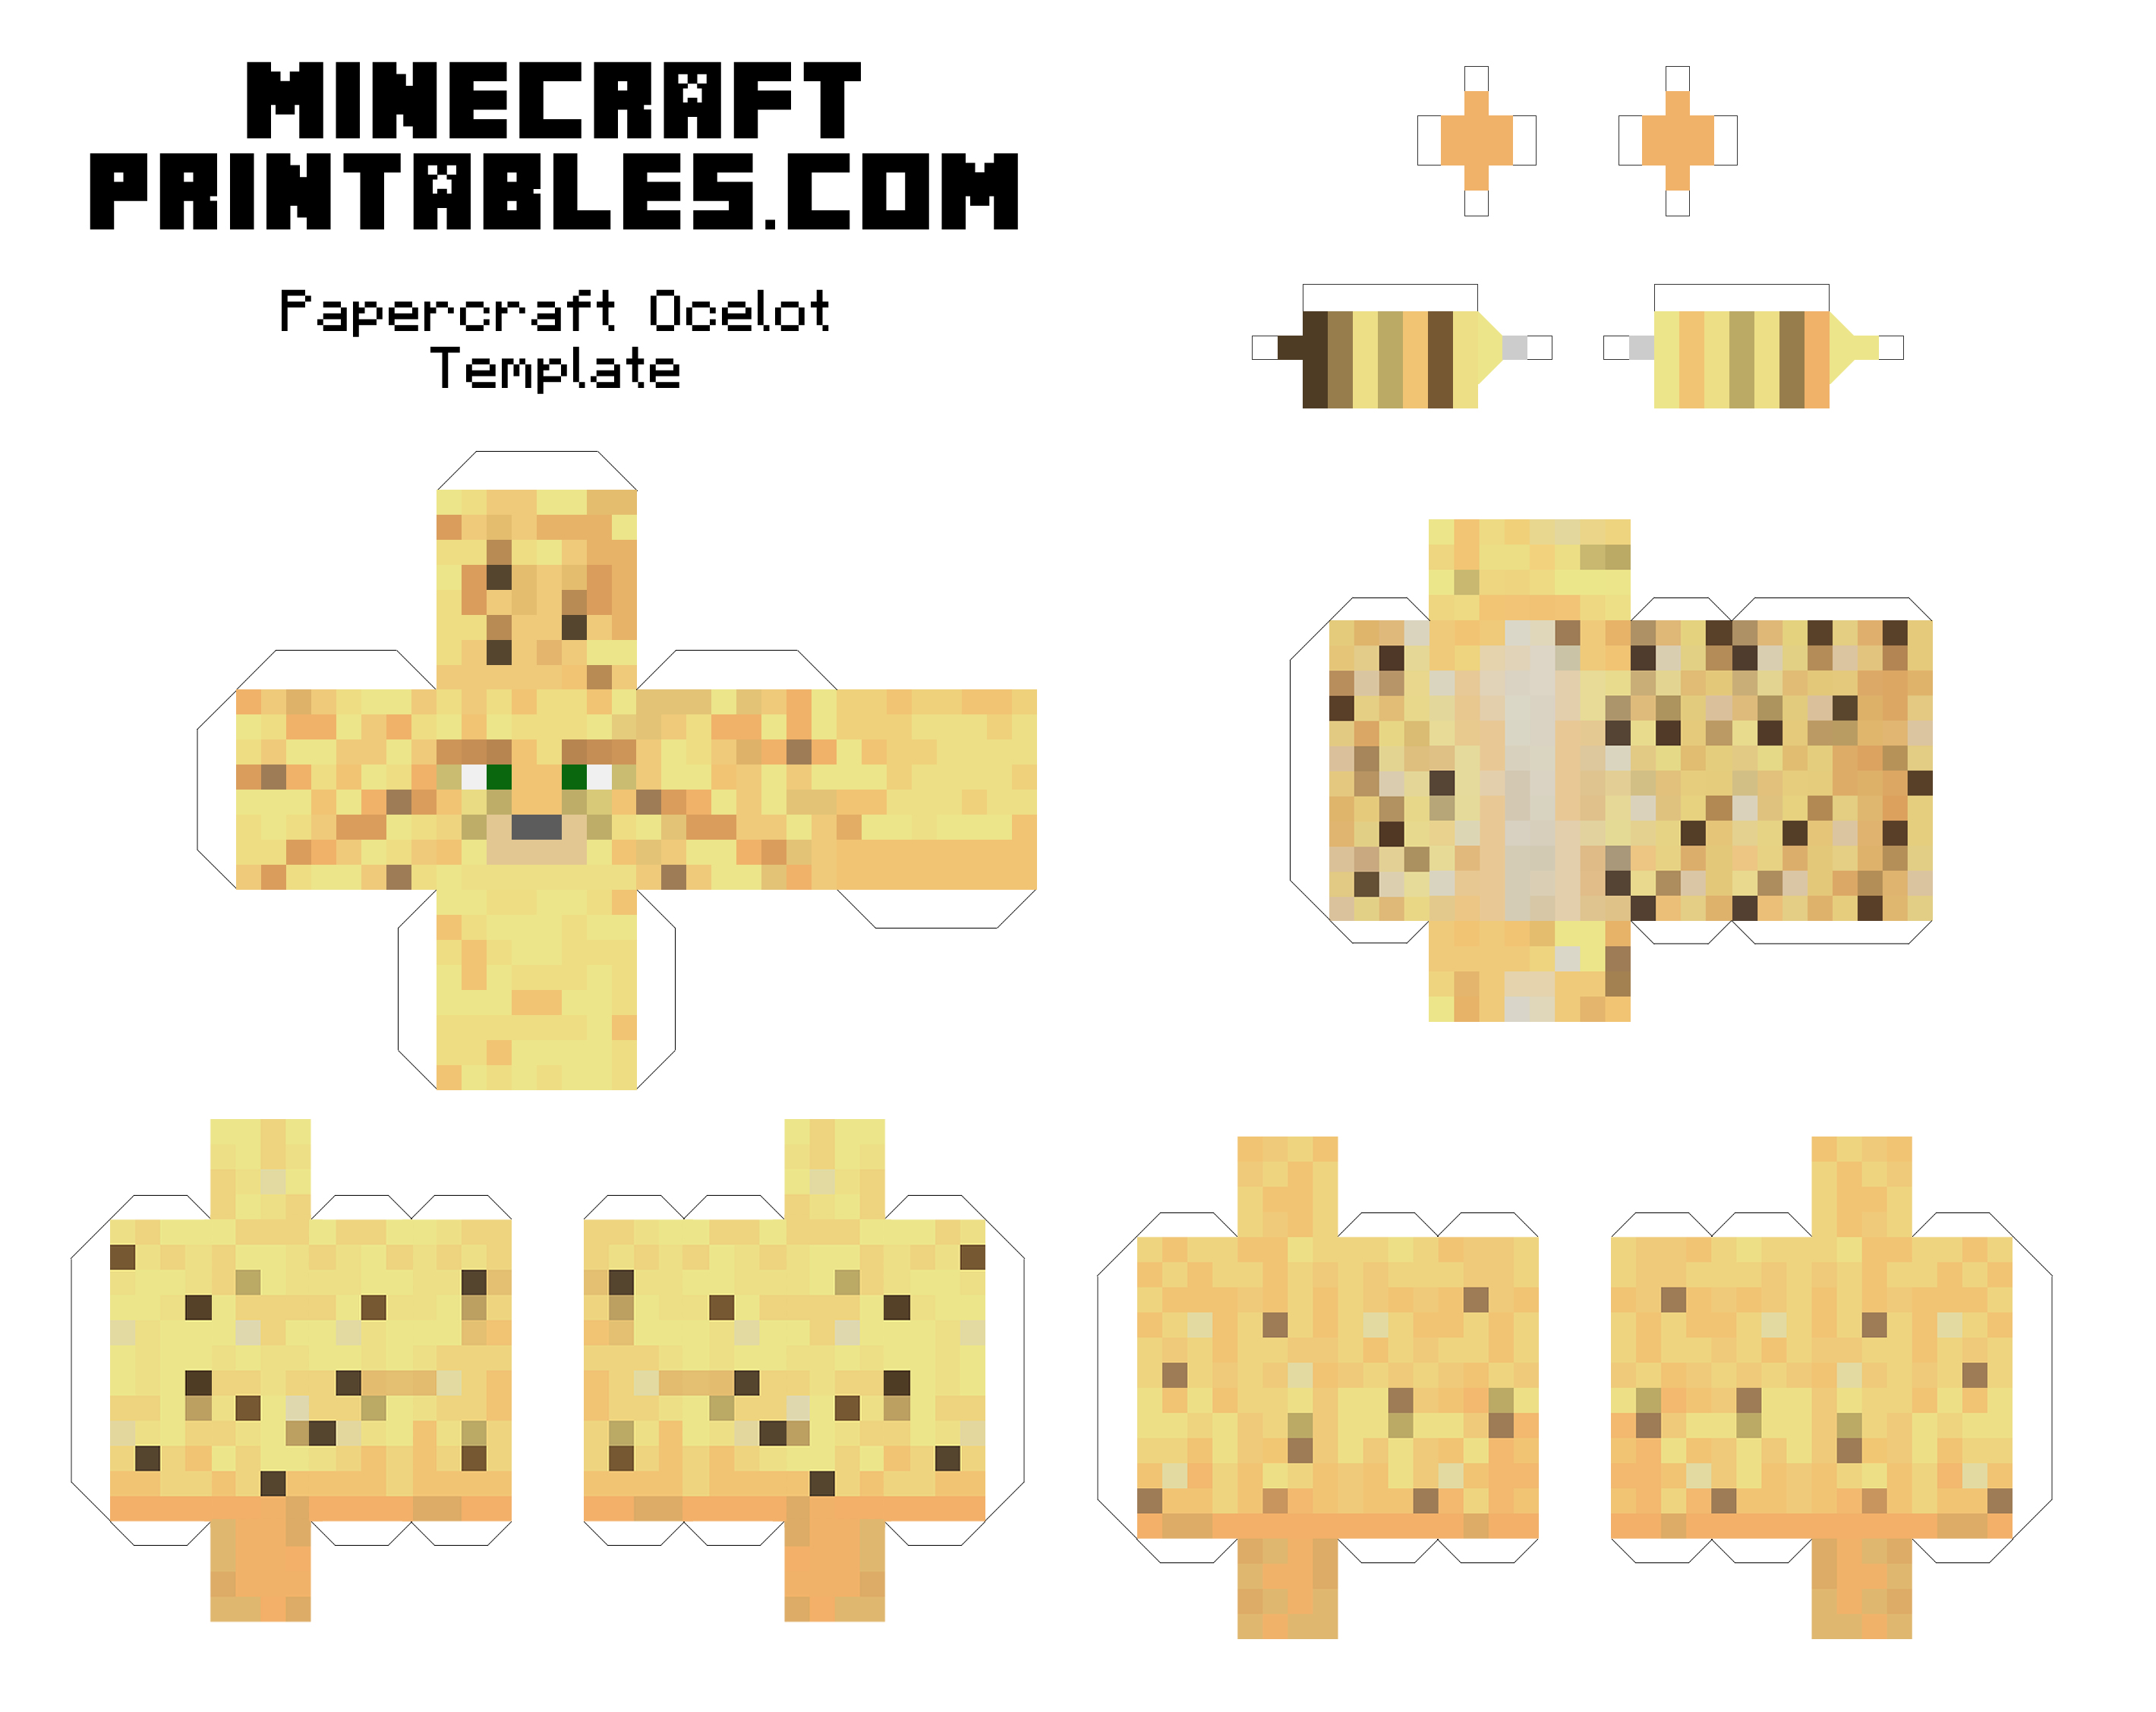 7 Images of Minecraft Papercraft Printables